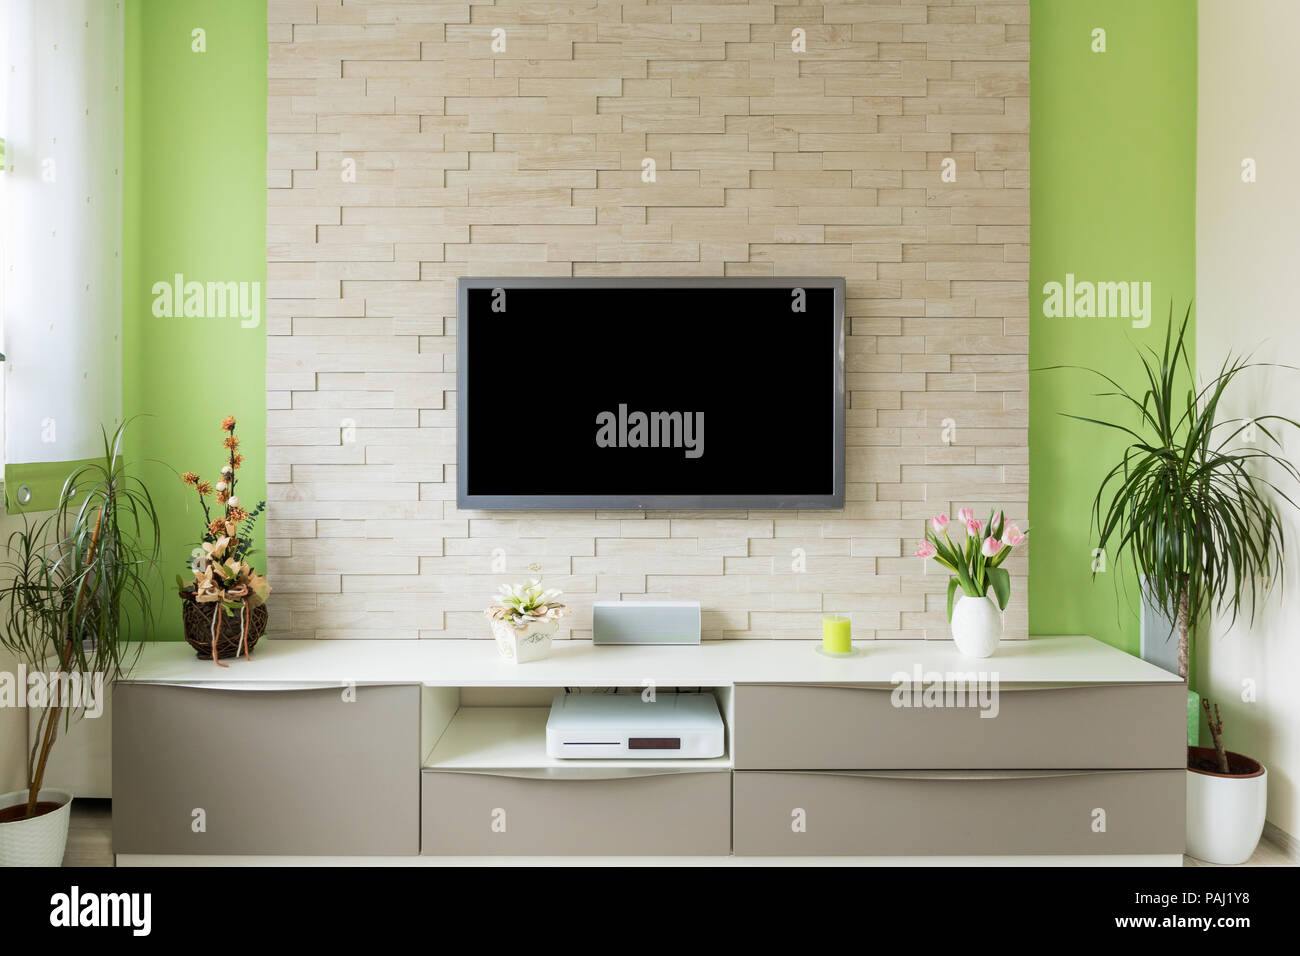 Modern living room interior   tv mounted on brick wall with black ...